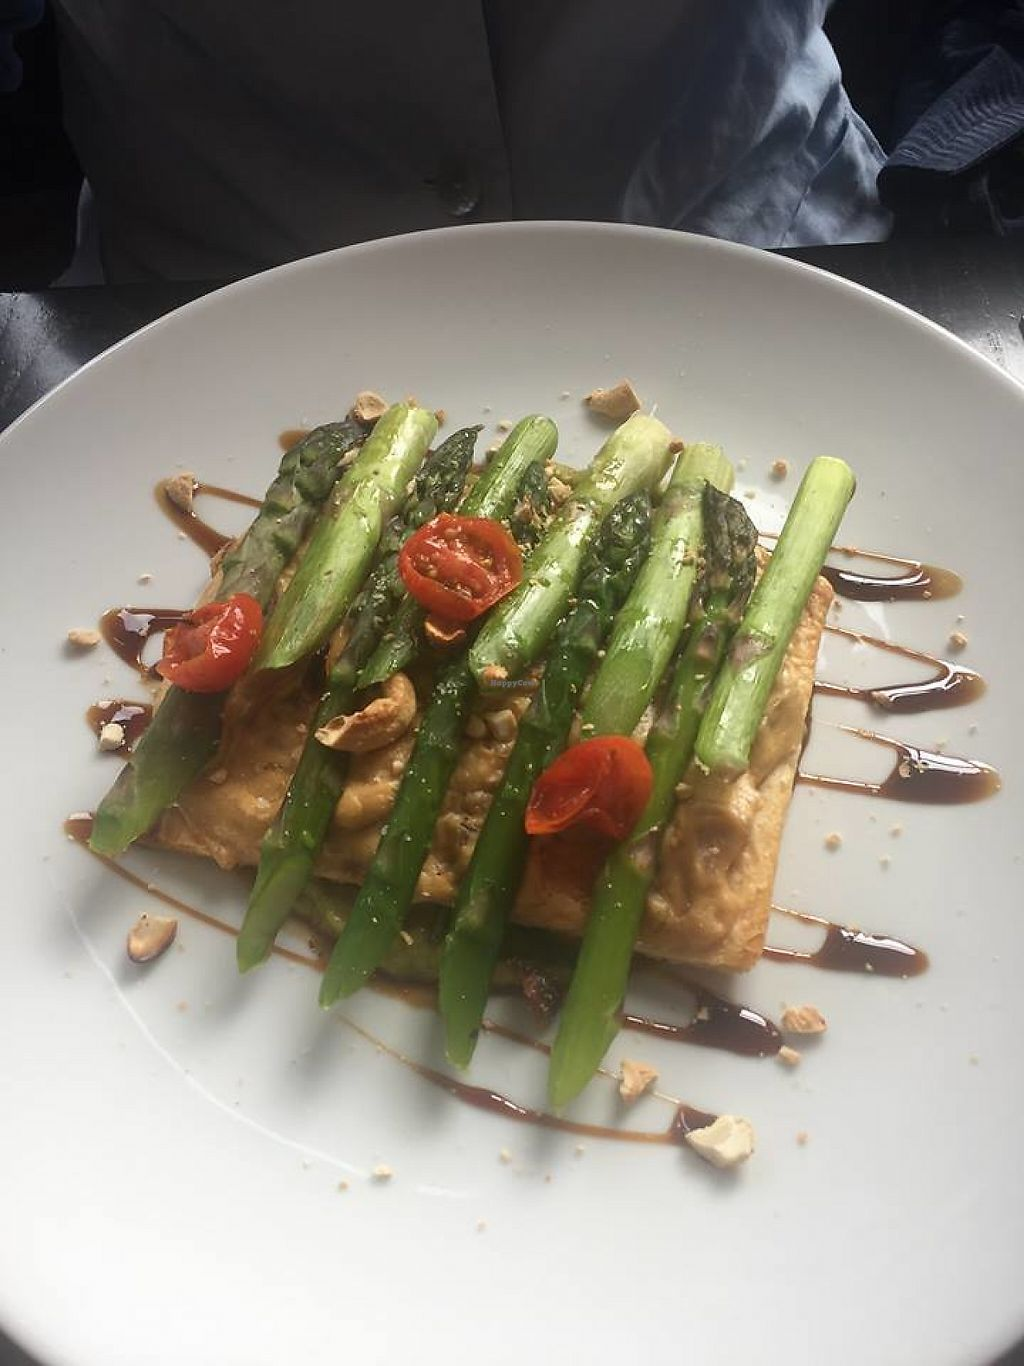 """Photo of The Gate - Islington  by <a href=""""/members/profile/small_trees"""">small_trees</a> <br/>Asparagus tart with cashew cheese  <br/> May 31, 2017  - <a href='/contact/abuse/image/32582/264457'>Report</a>"""